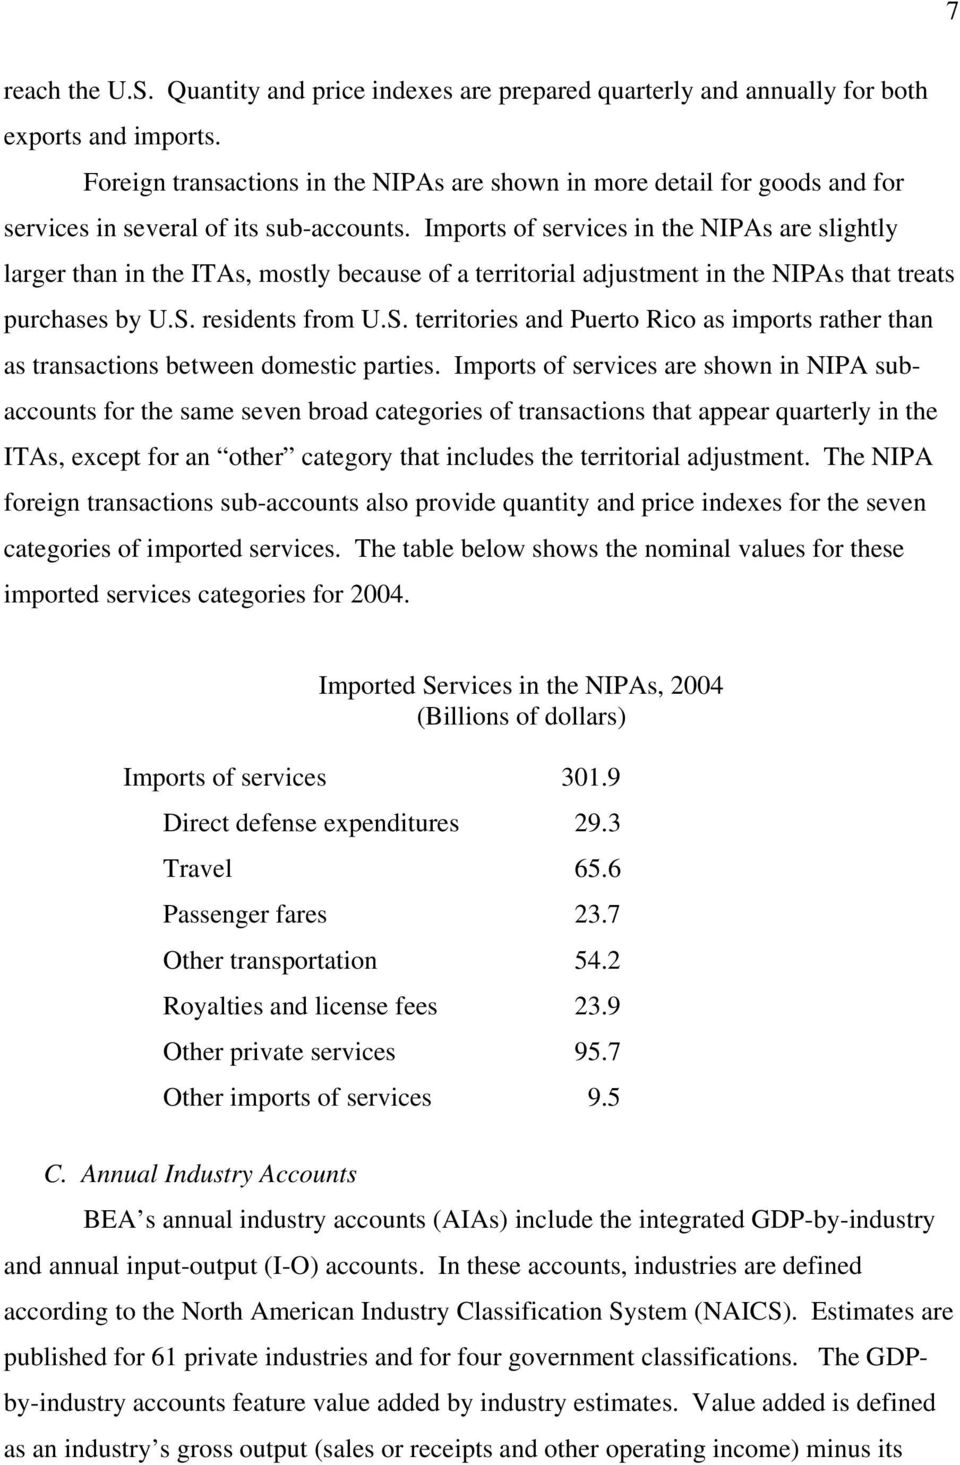 Imports of services in the NIPAs are slightly larger than in the ITAs, mostly because of a territorial adjustment in the NIPAs that treats purchases by U.S.